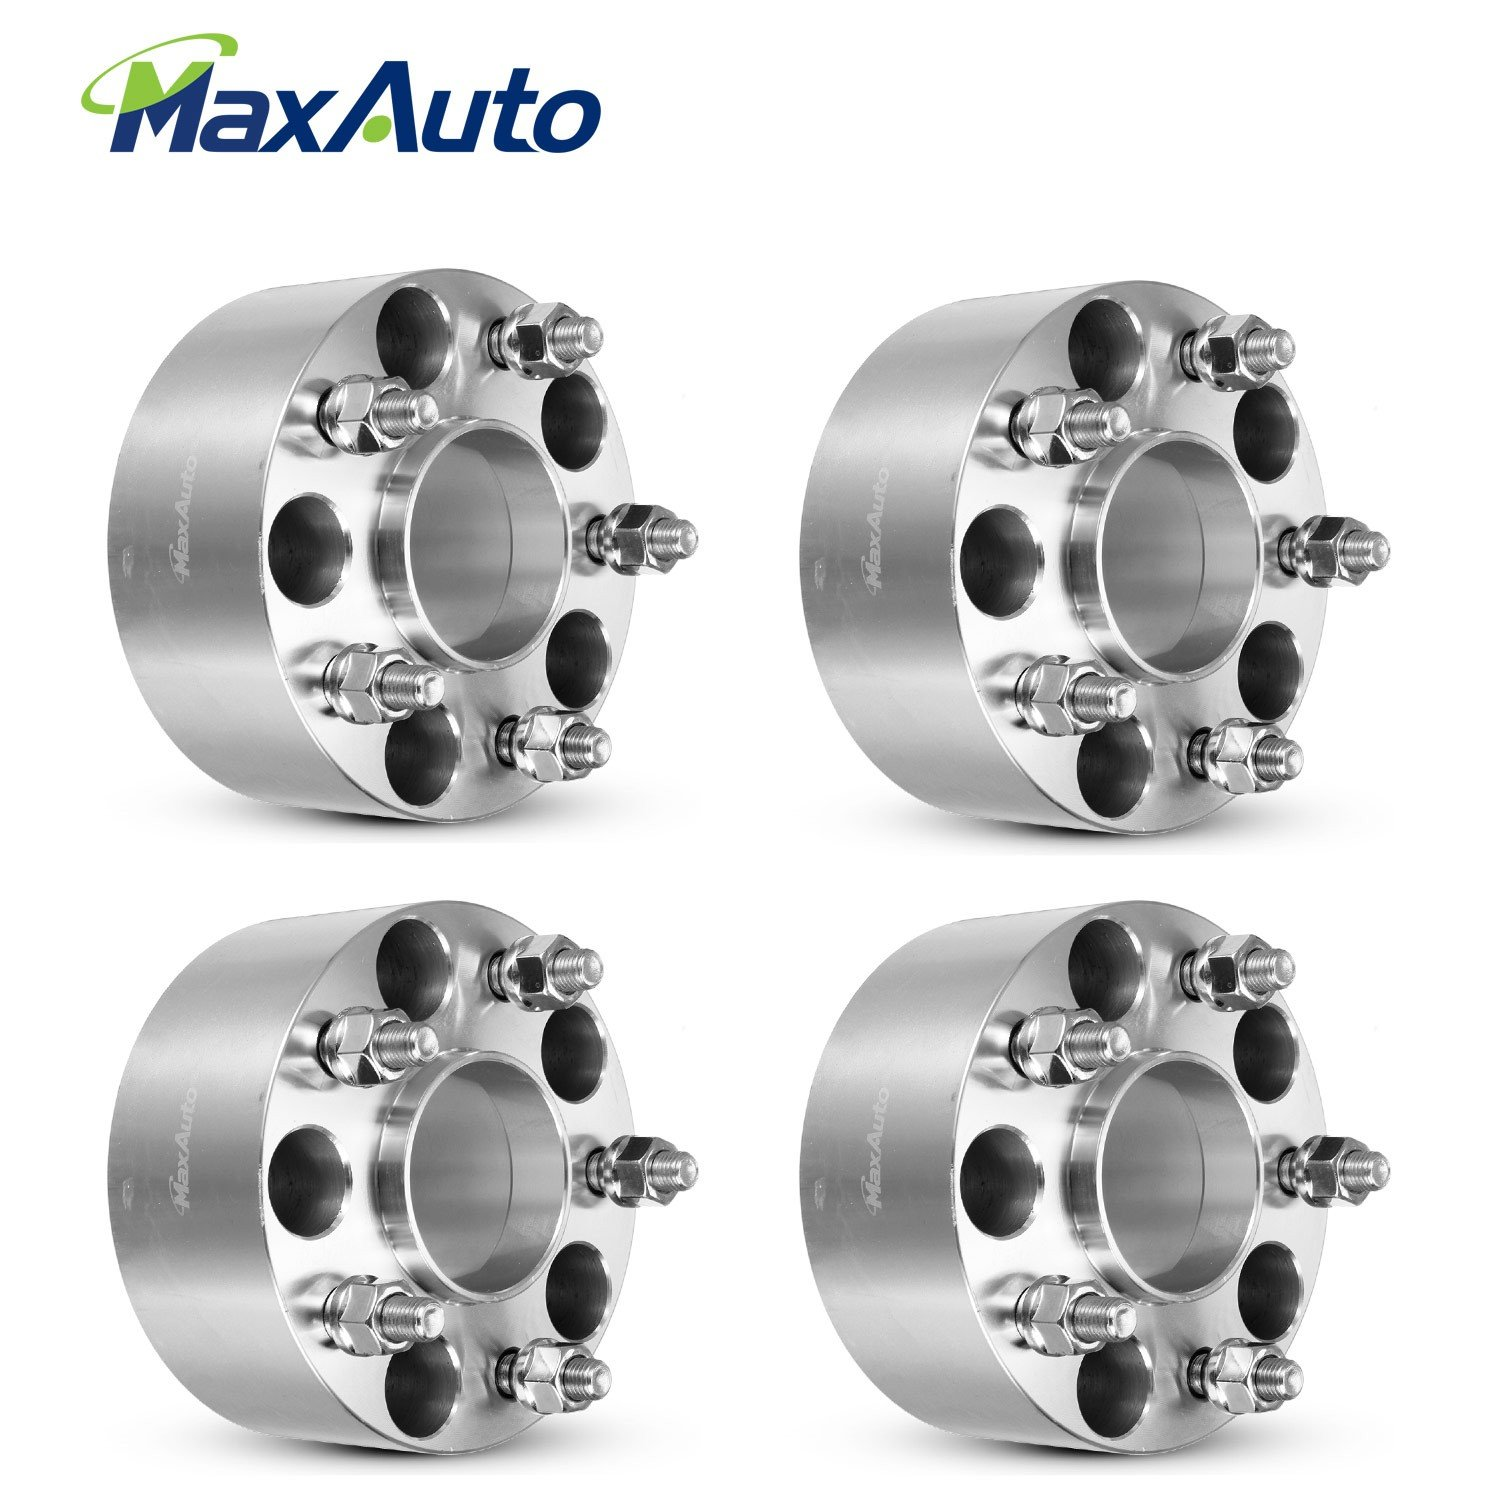 MaxAuto 64mm (2.5'') Thick 5x4.75/5x120.65 Hubcentric Wheel Spacers No Lip 12x1.5 Studs for 79-85 Cadillac Eldorad,03-09 Cadillac XLR,77-87 Chevrolet Impala,90-05 GMC Jimmy Silver (4) by MaxAuto (Image #1)